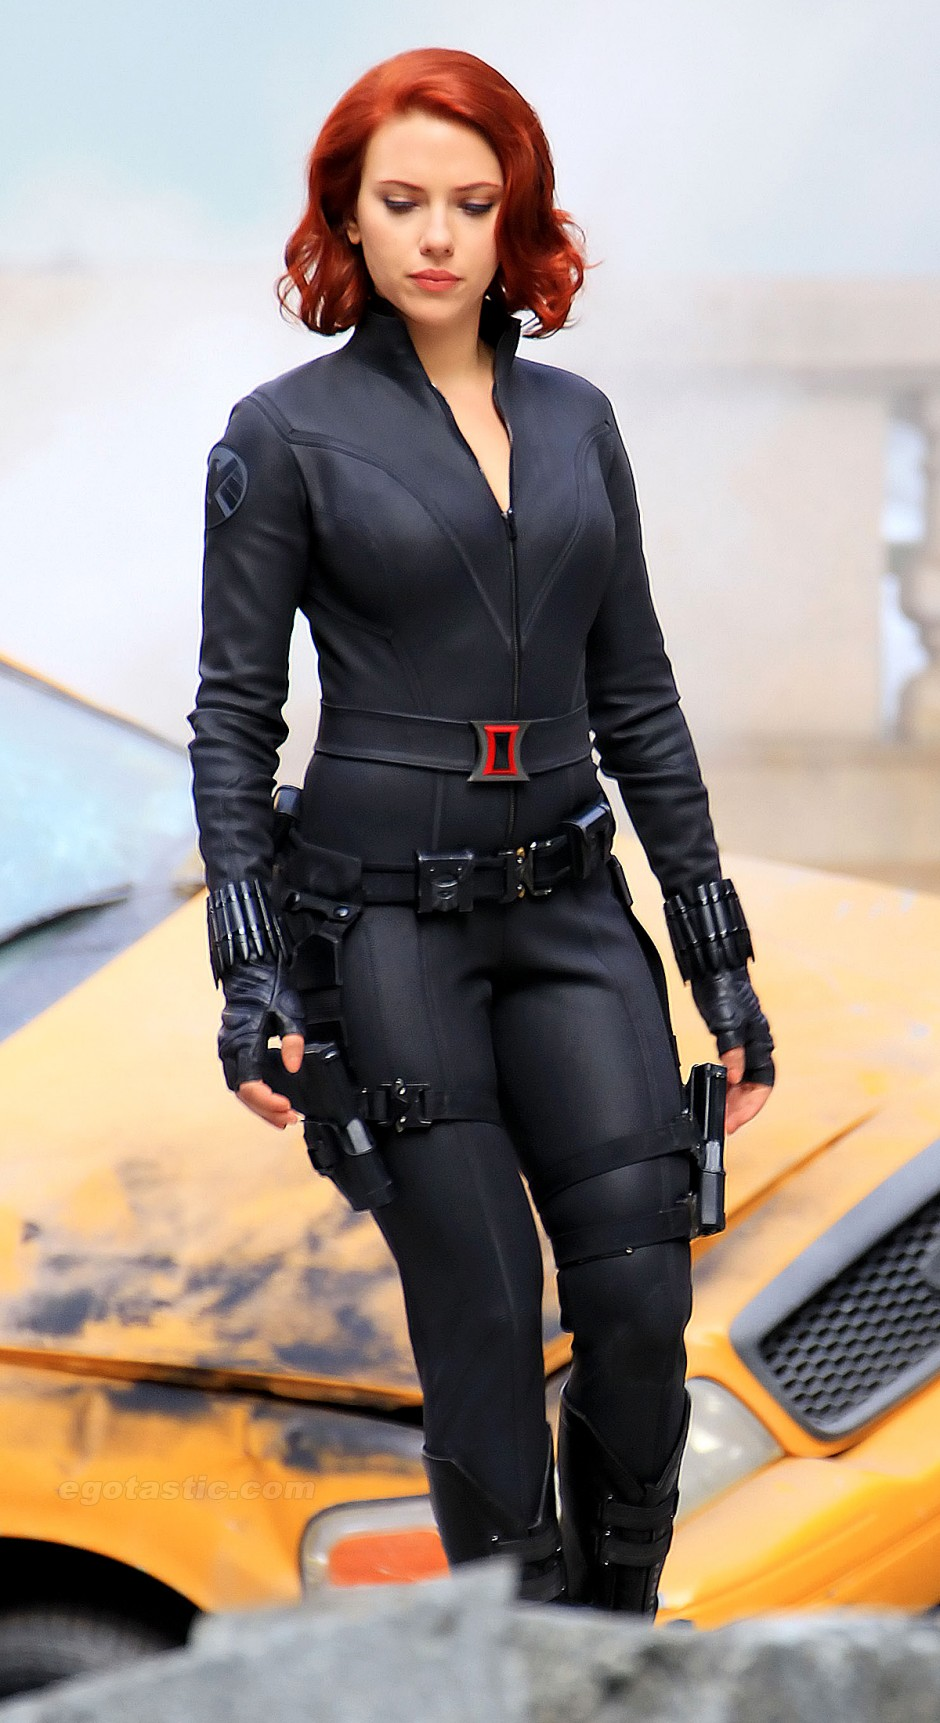 Preview Black Widow Scarlett Johansson Avengers